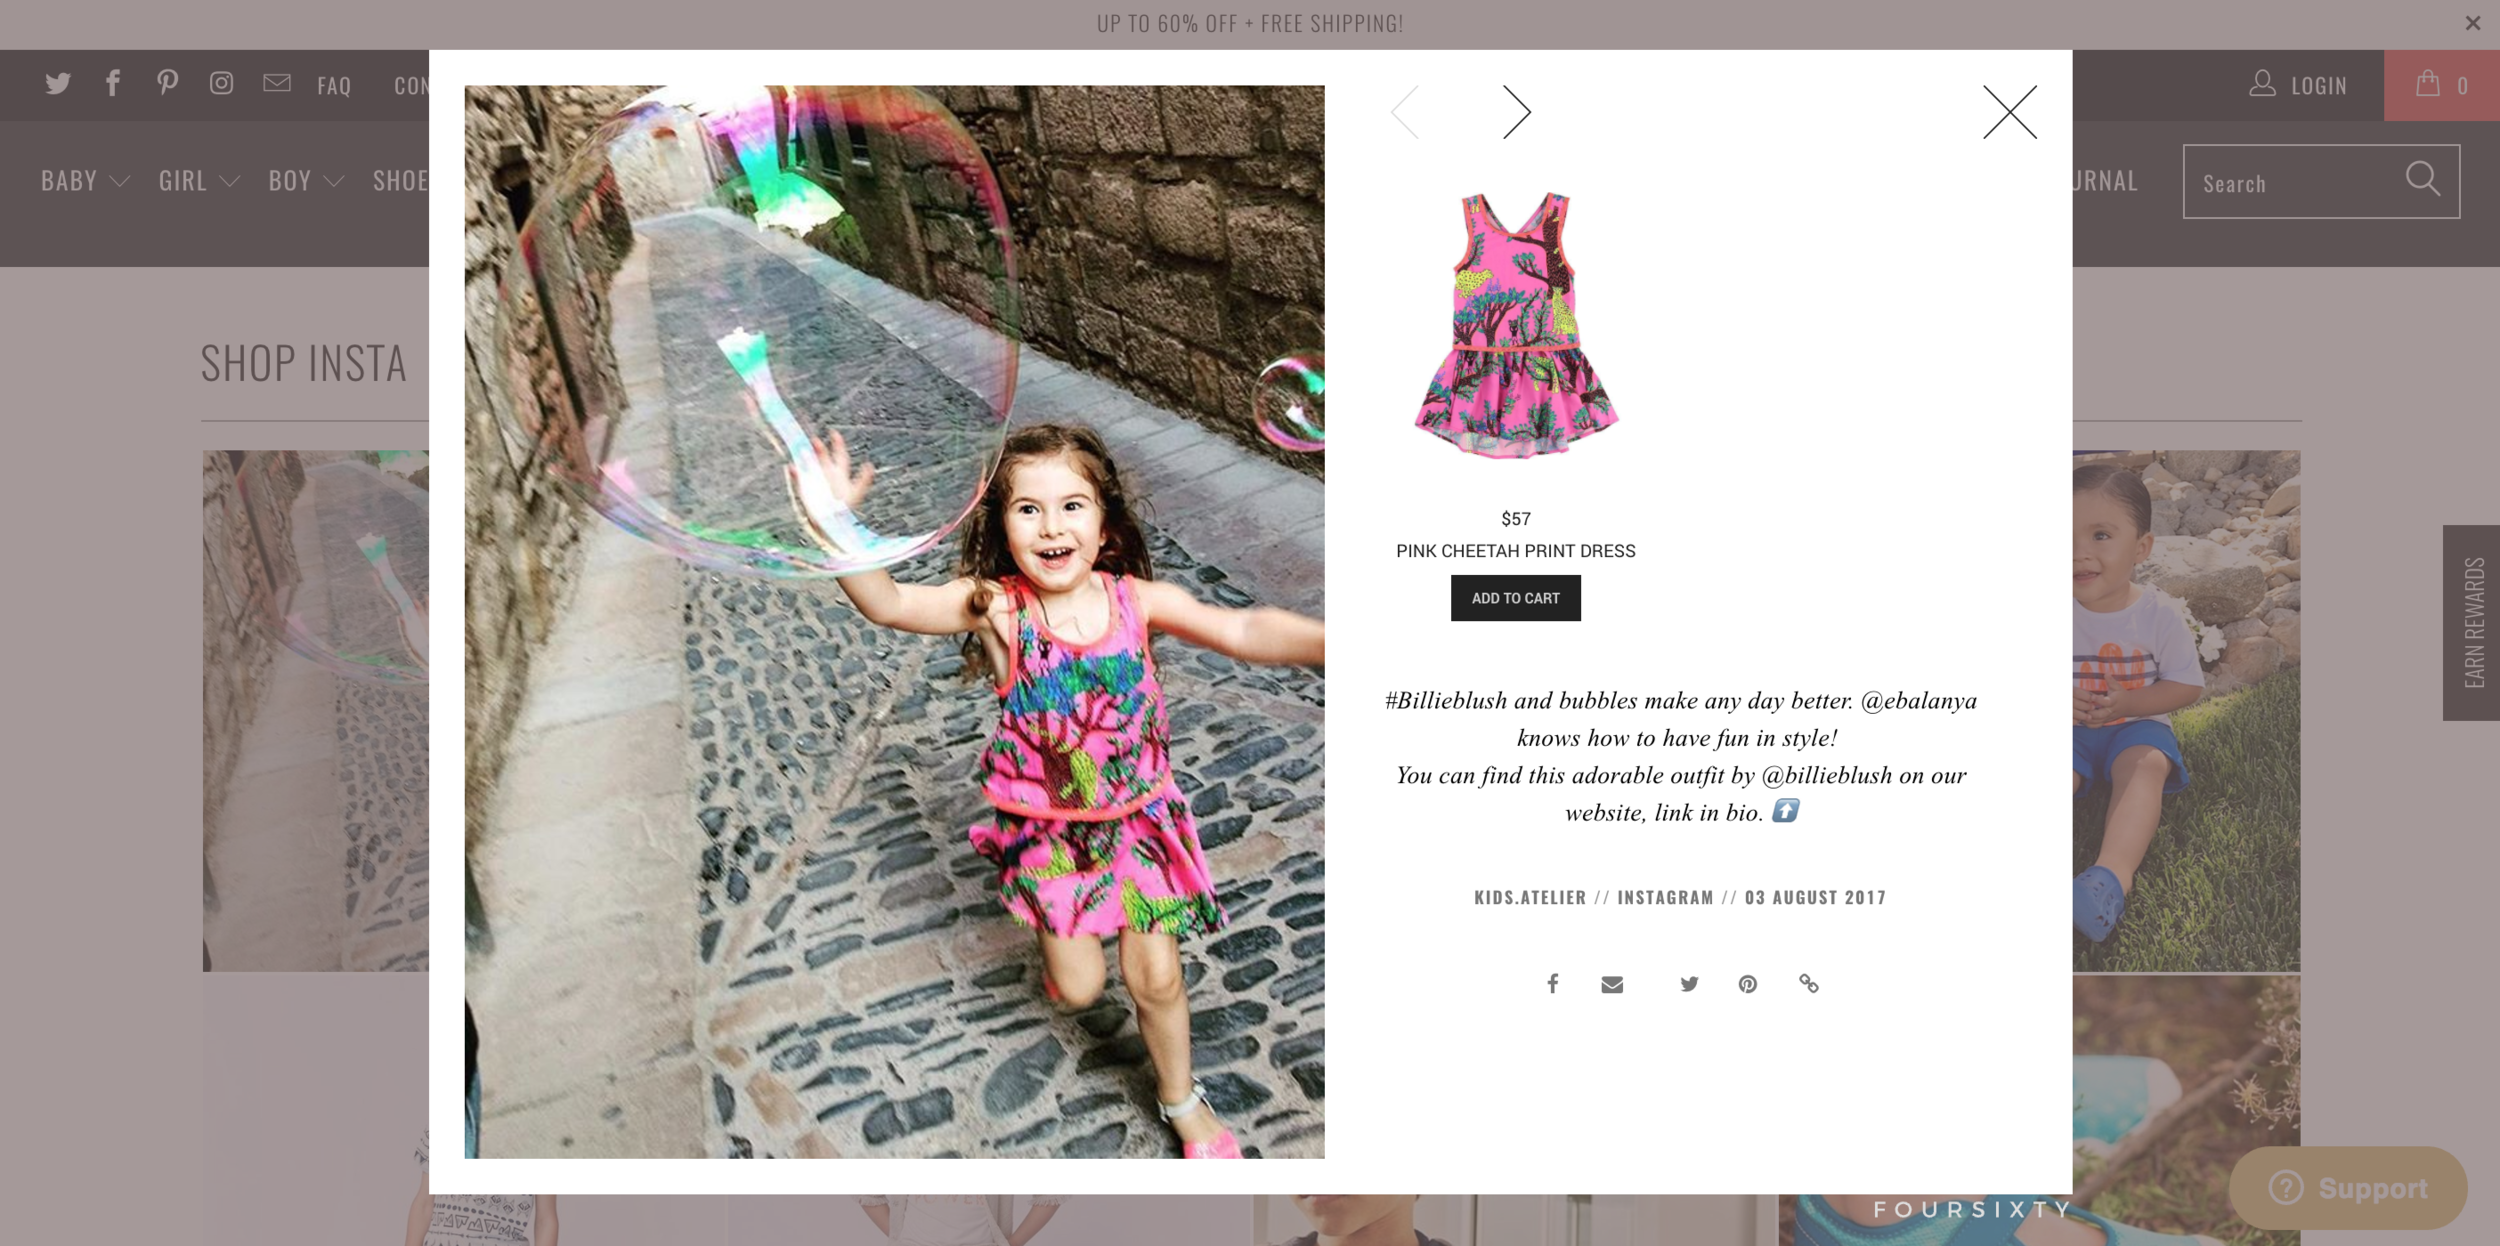 Shoppable Lookbook - The lookbook is pulling selected images from our Instagram feed and we can link them to items in the shop with an immediate 'add to cart' function and easy navigation back or next.